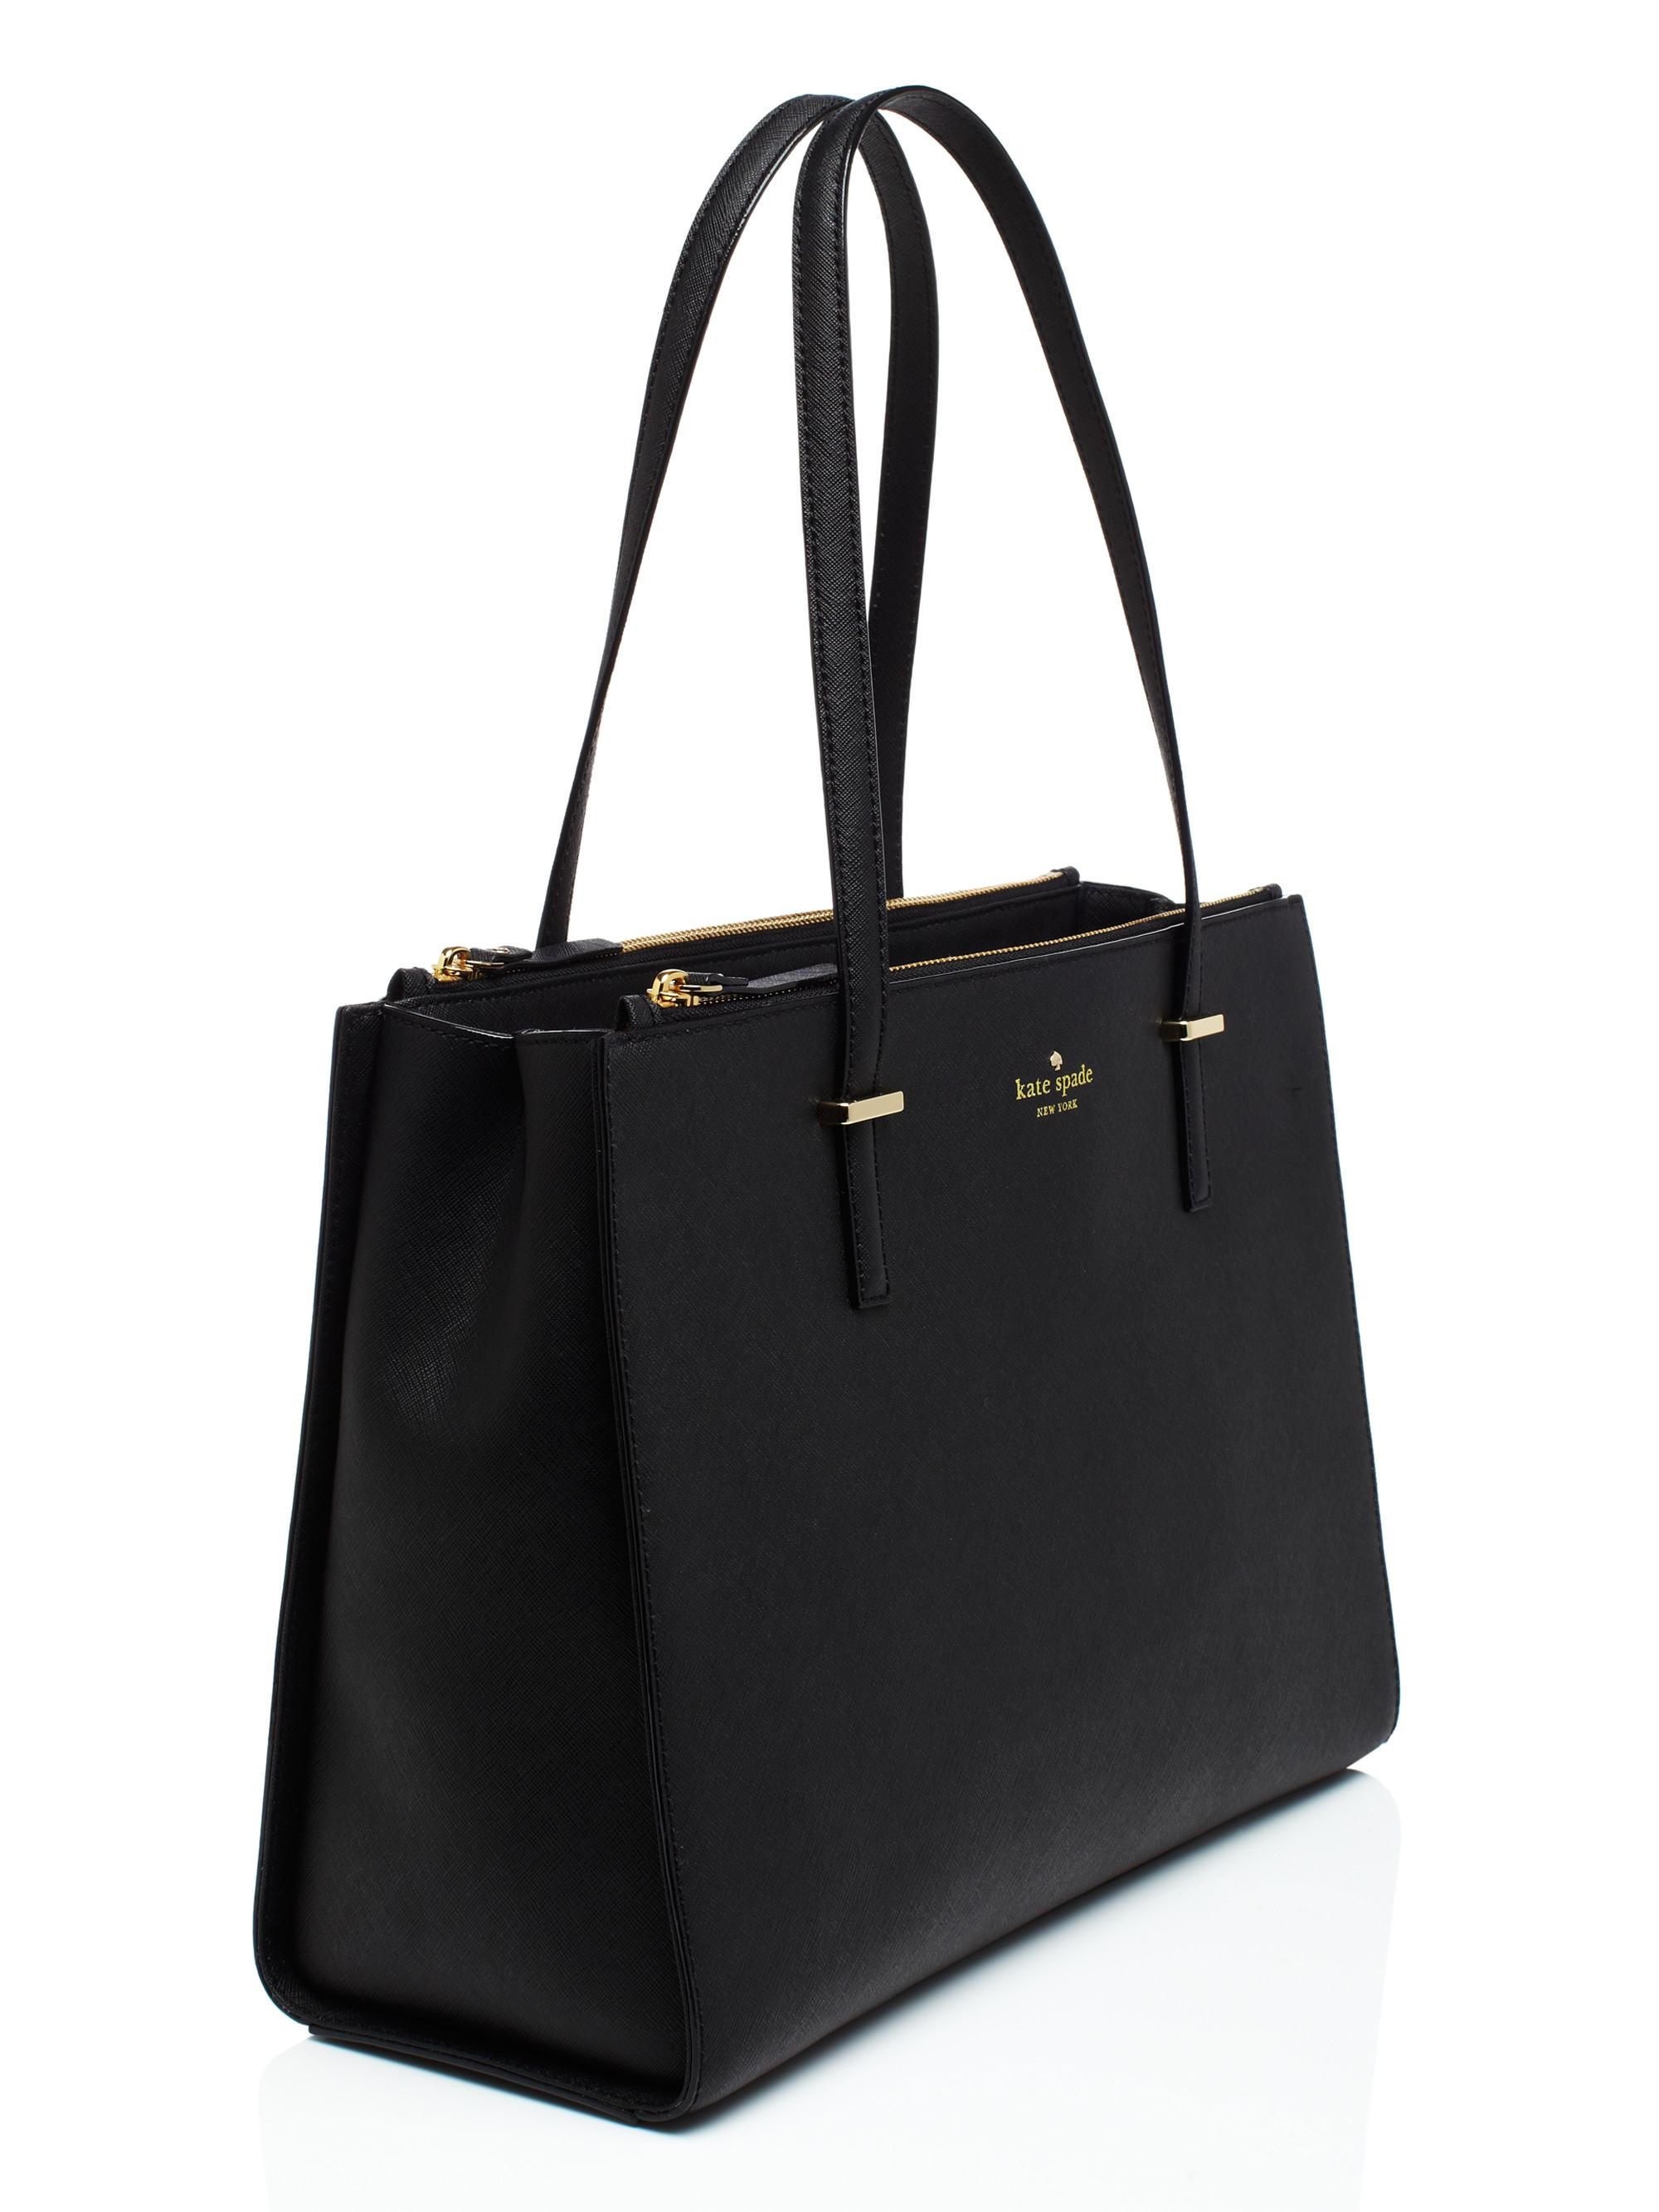 Kate Spade New York Cedar Street Jensen Leather Tote Bag